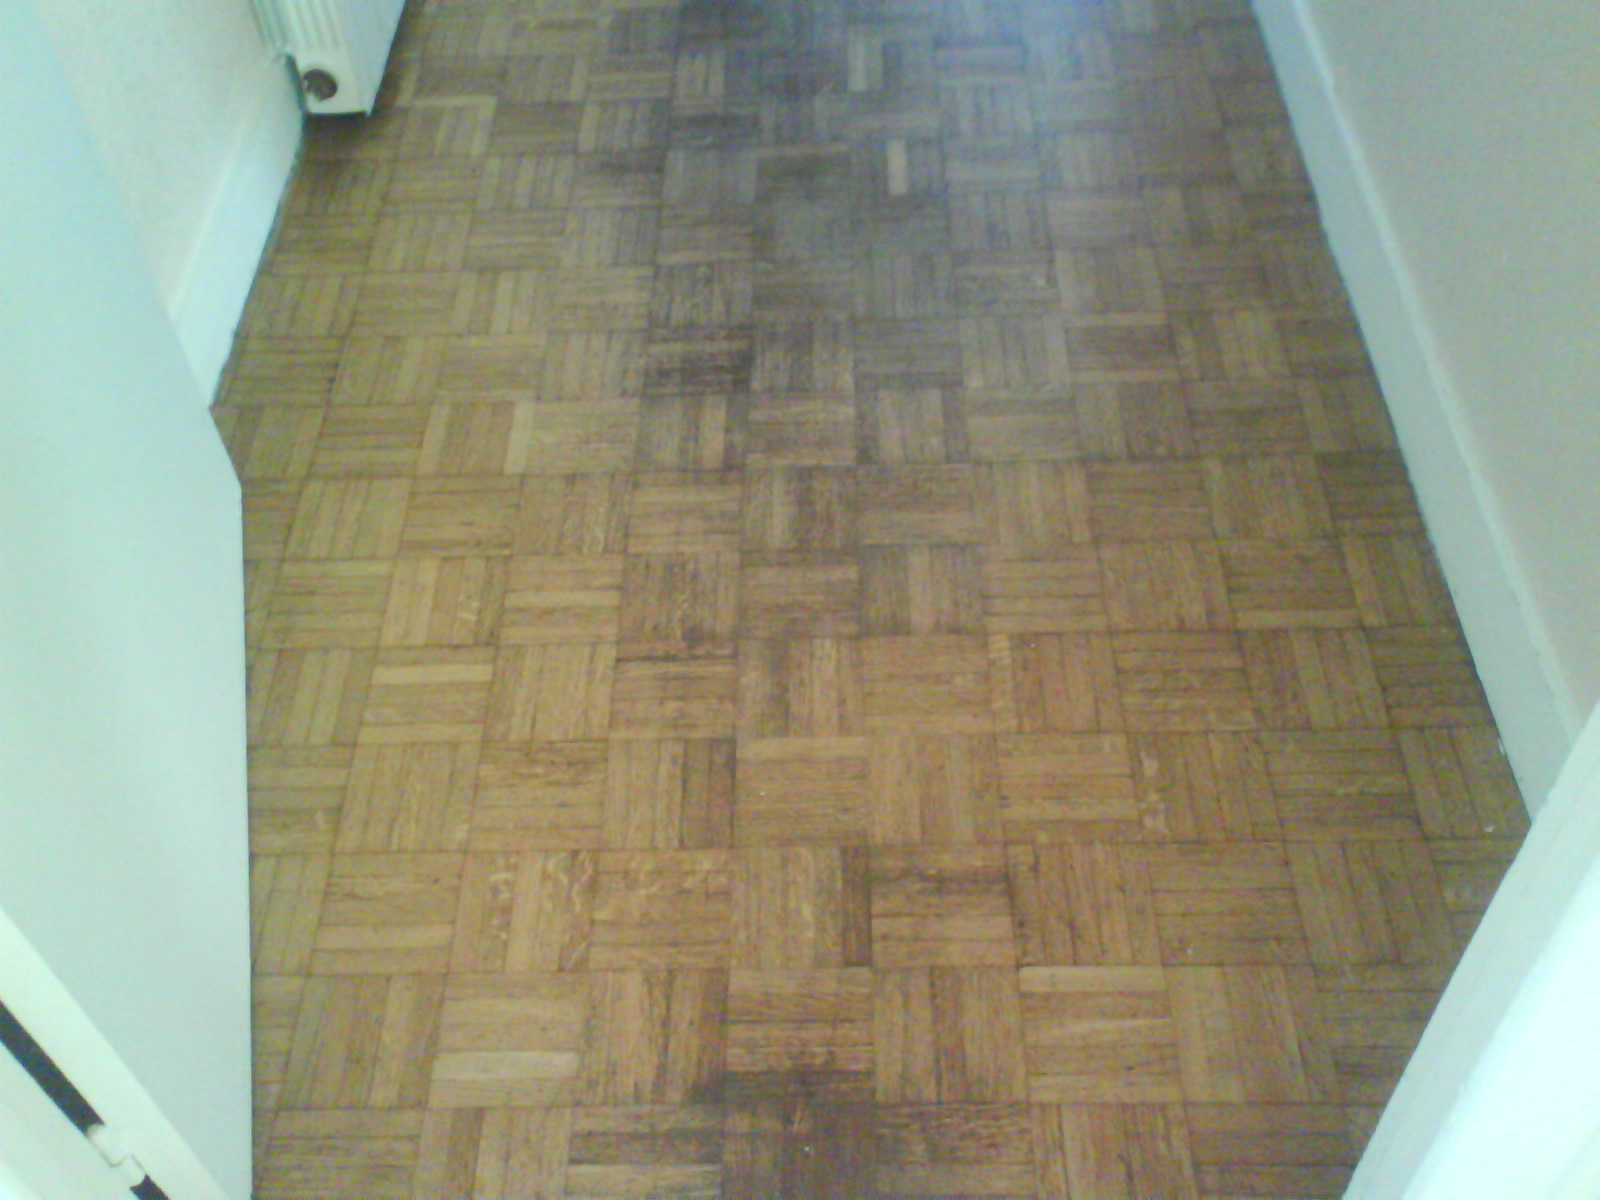 nettoyer parquet ancien modle chne authentique cuir diva comment entretenir un parquet with. Black Bedroom Furniture Sets. Home Design Ideas